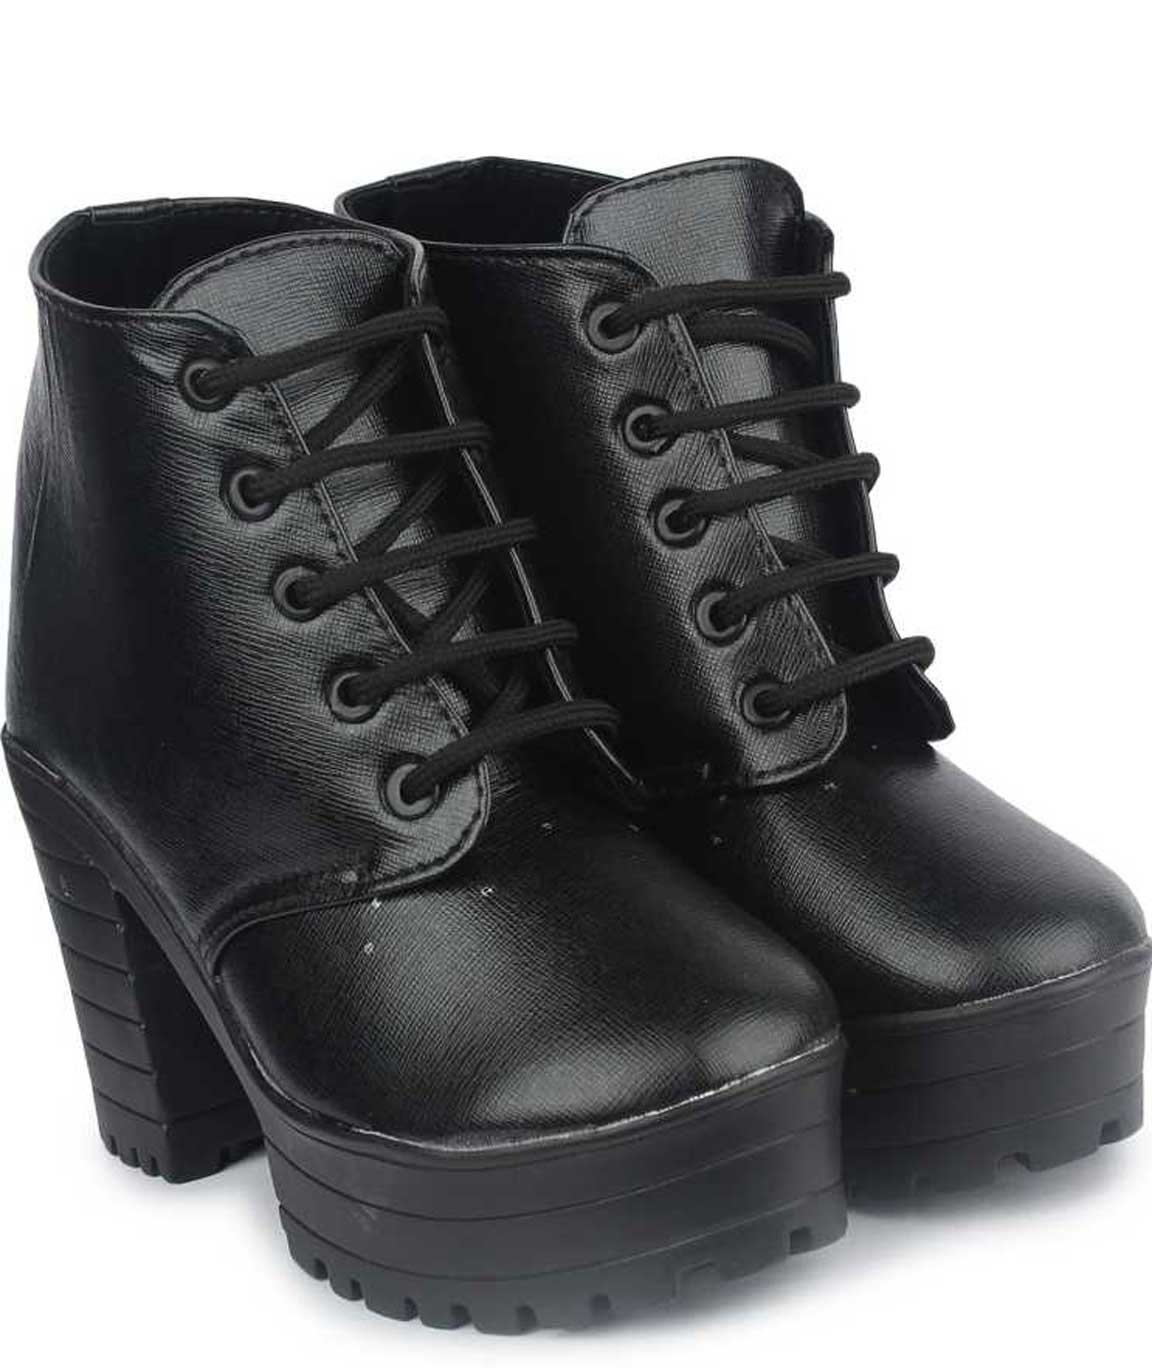 BOOTS FOR WOMEN ( BLACK )